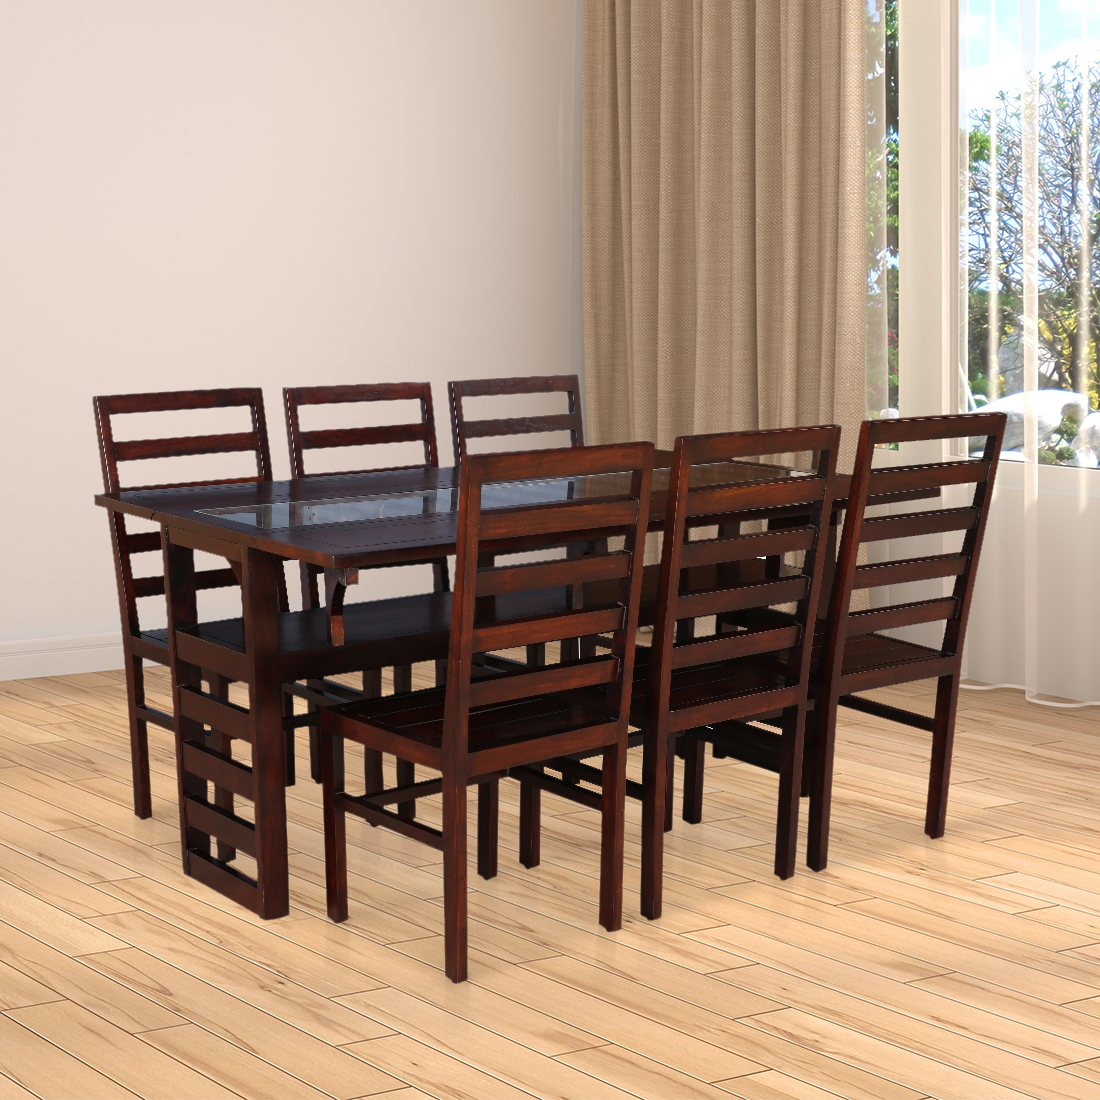 Durham Solid Wood Glass Top Six Seater Dining Set in Walnut Colour by HomeTown